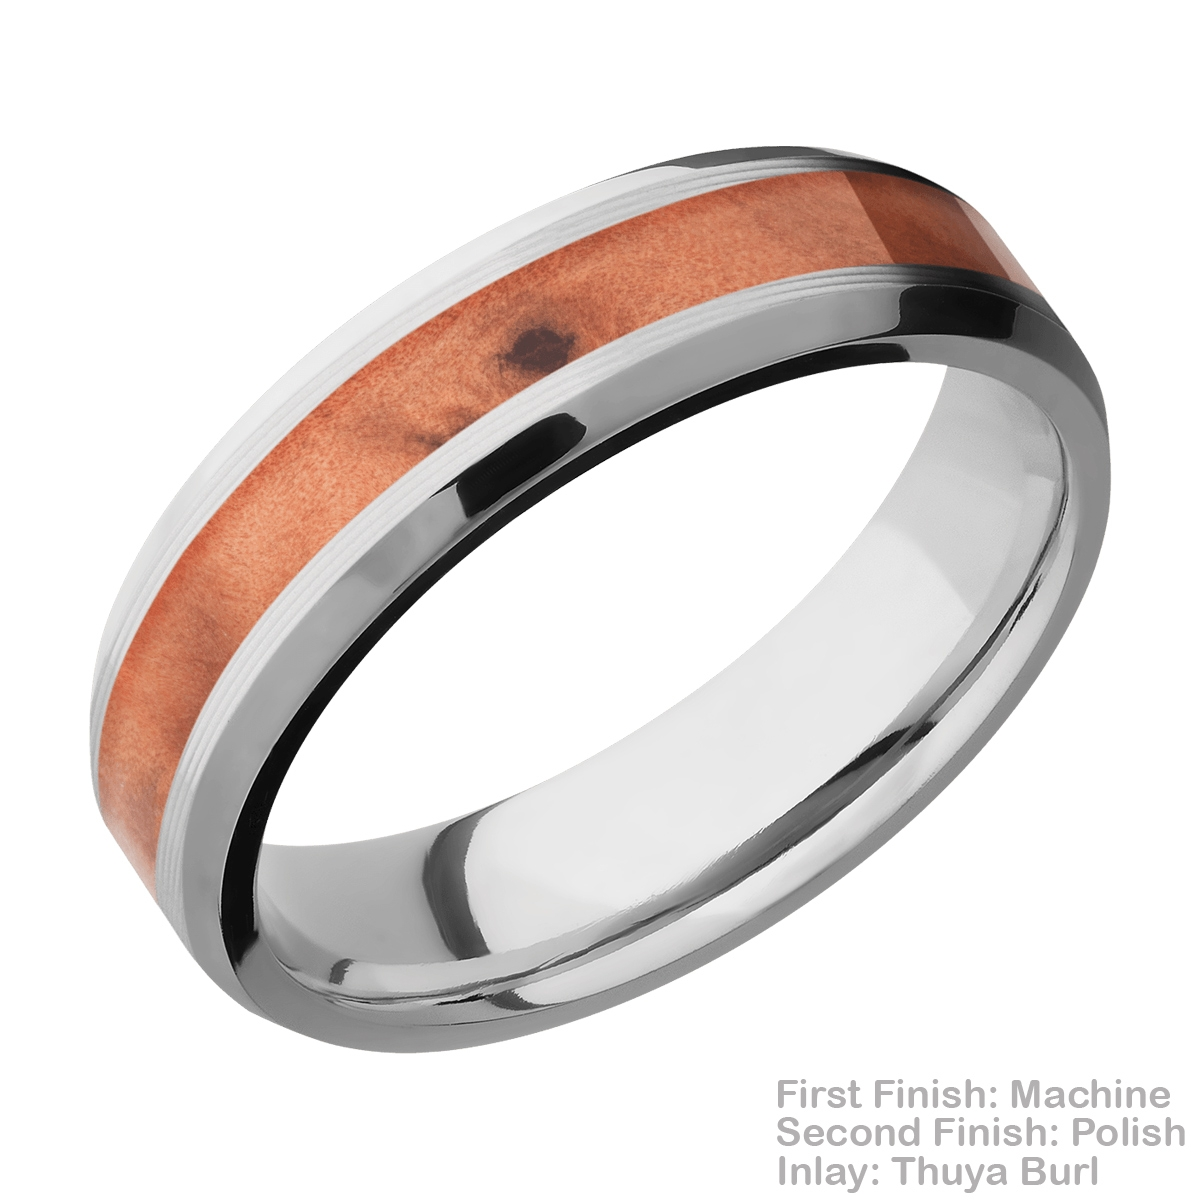 Lashbrook CC6B13(NS)/HARDWOOD Cobalt Chrome Wedding Ring or Band Alternative View 8